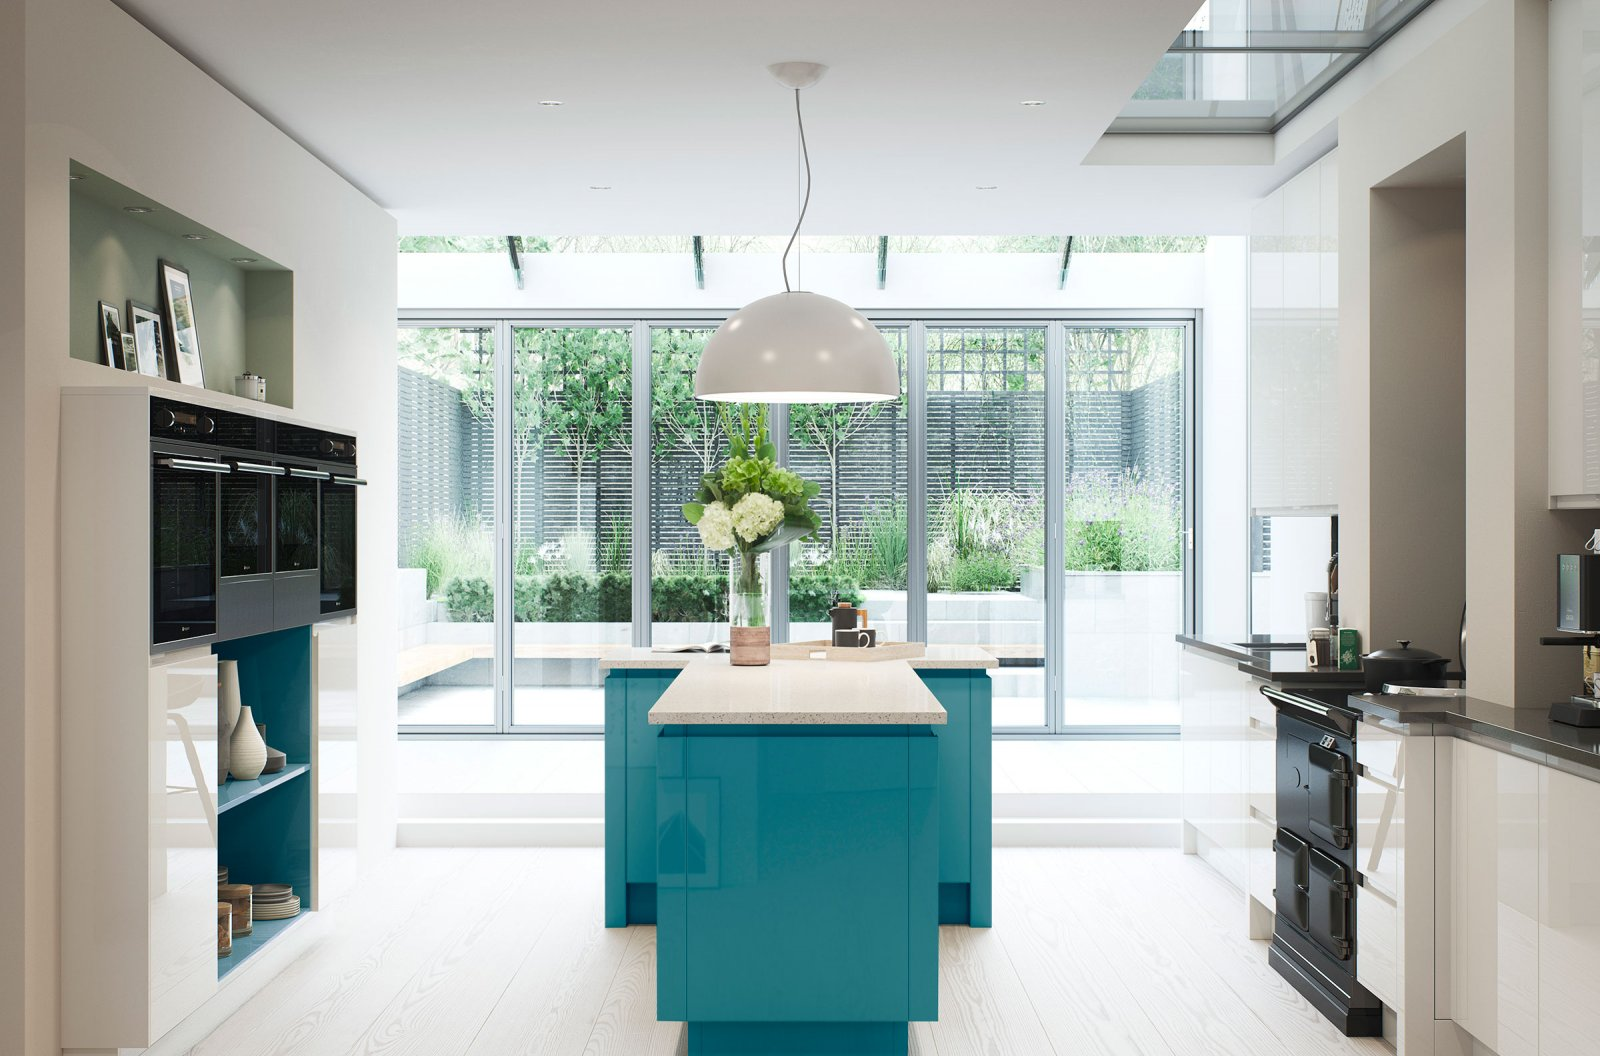 High gloss modern kitchen - bespoke gloss calico and lake como paint palettes